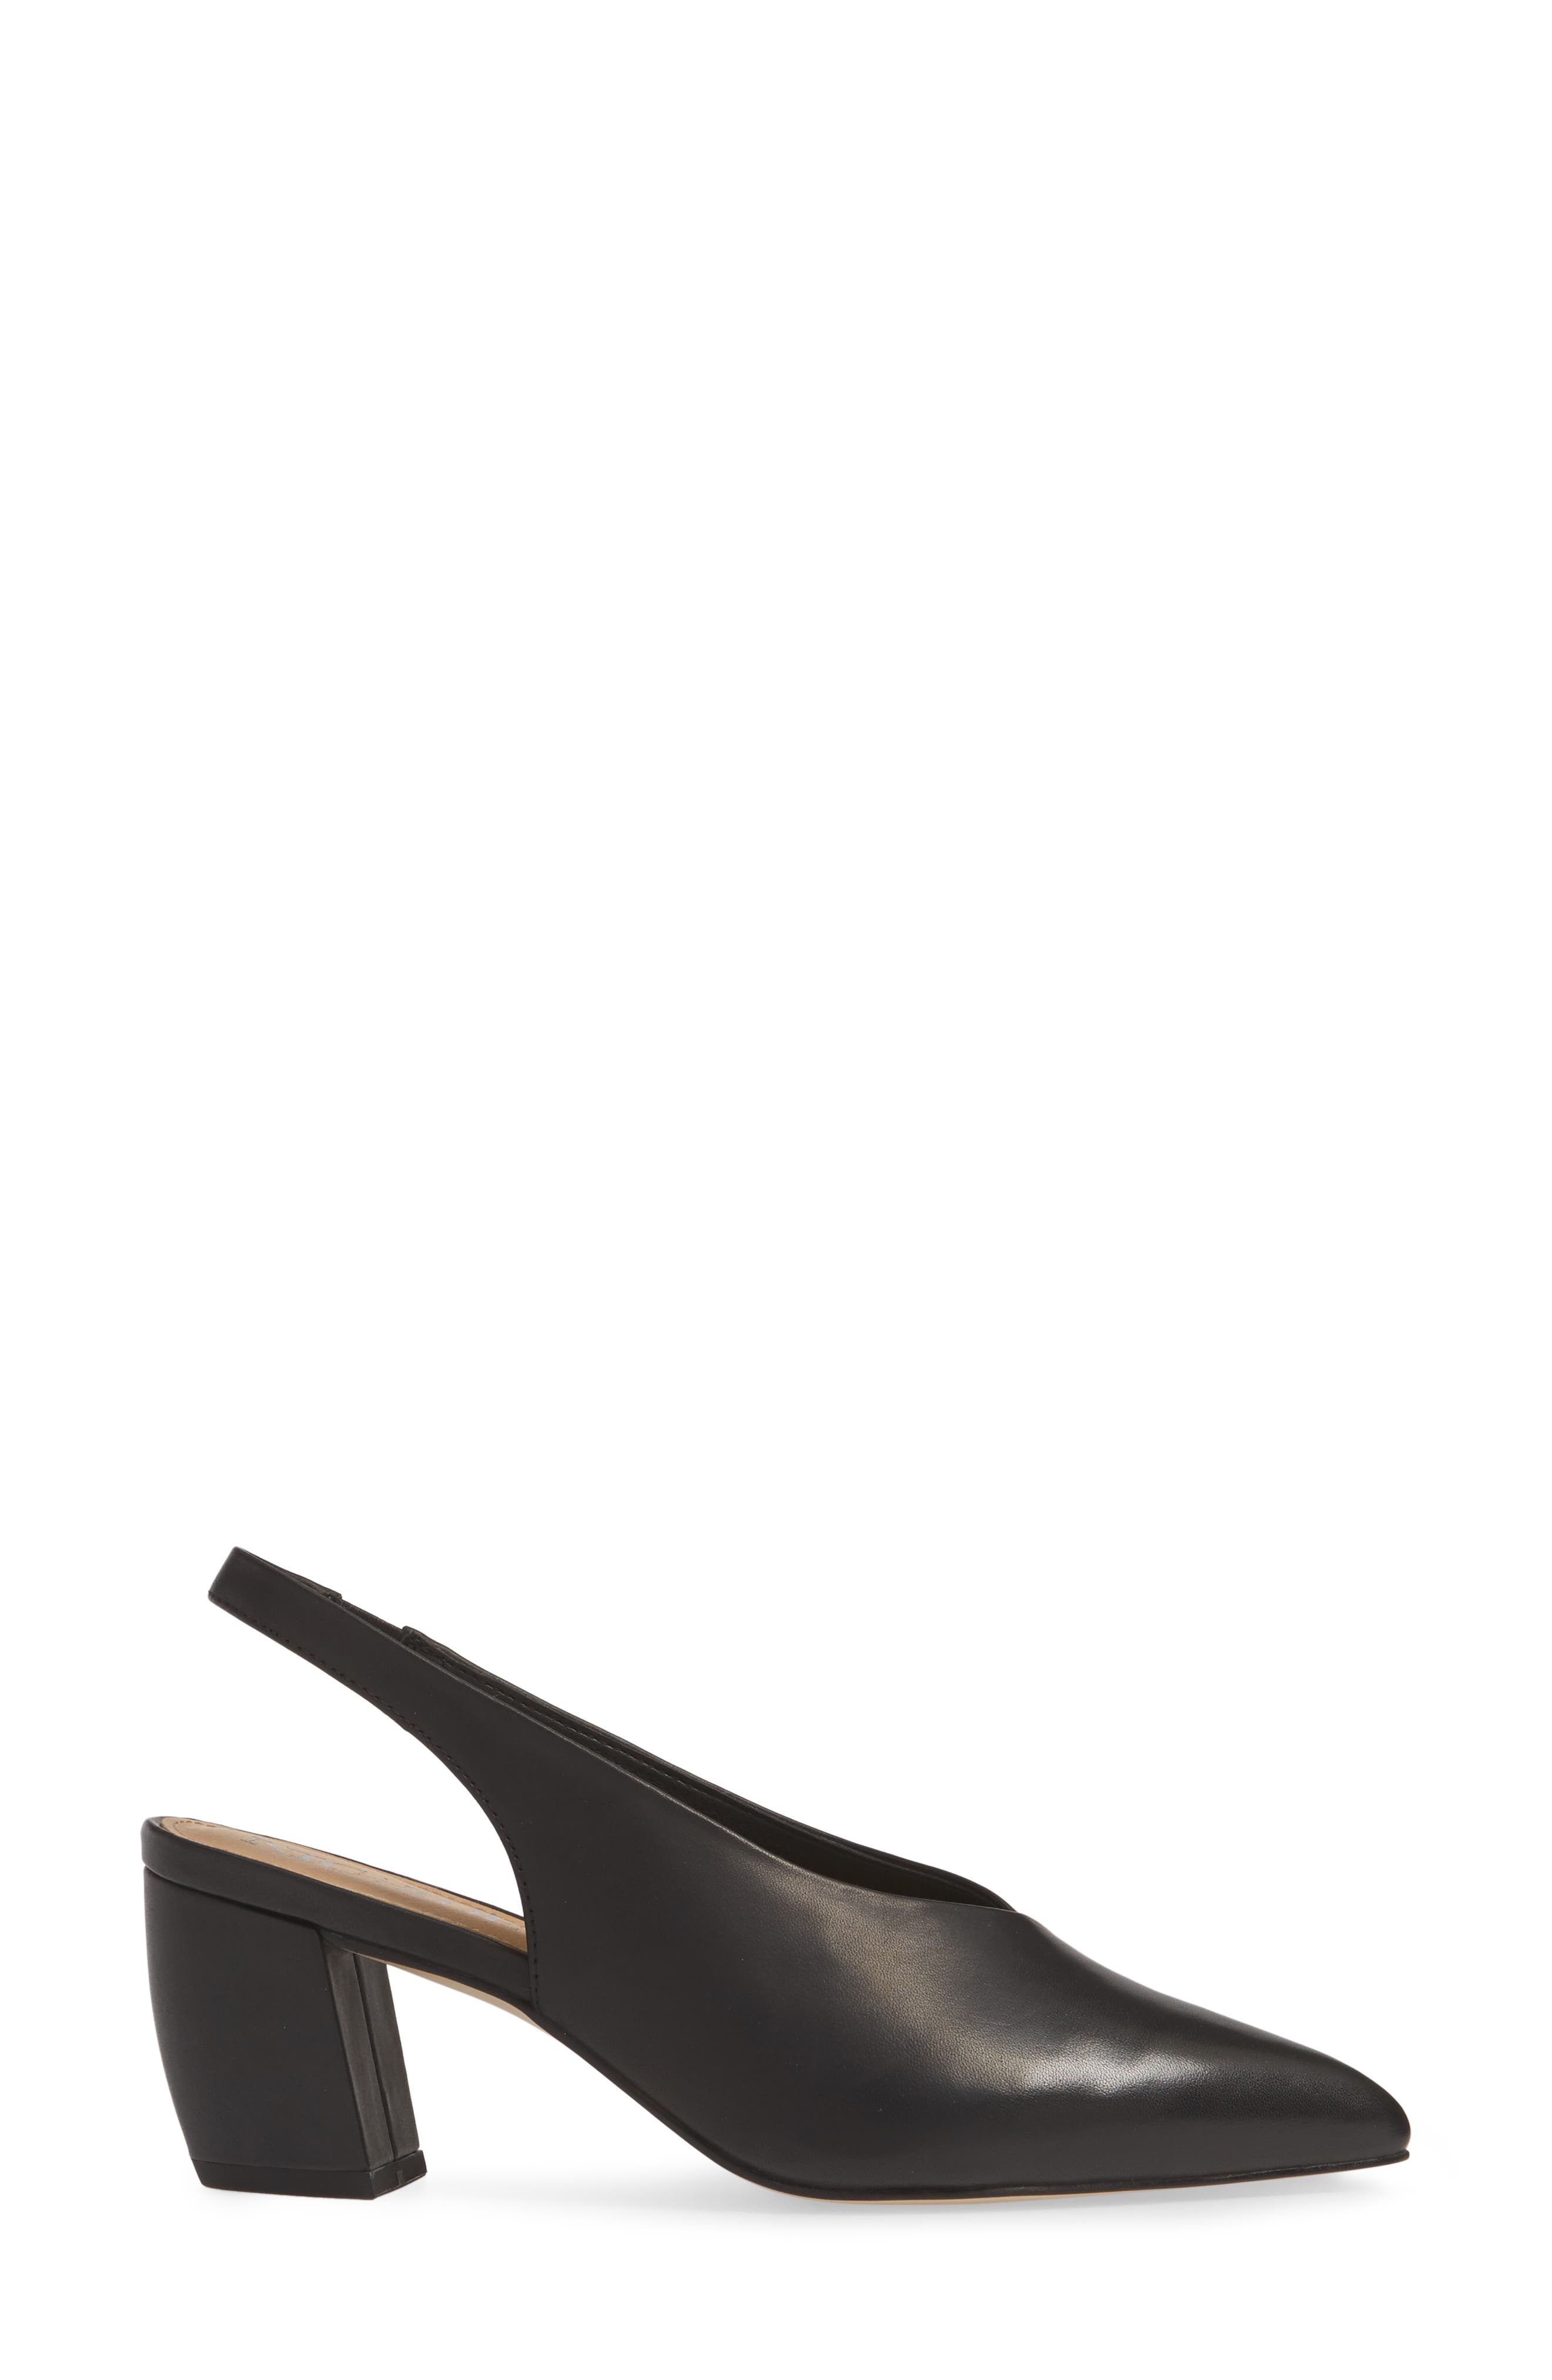 NIC+ZOE, Camille Slingback Pointy Toe Pump, Alternate thumbnail 3, color, BLACK LEATHER